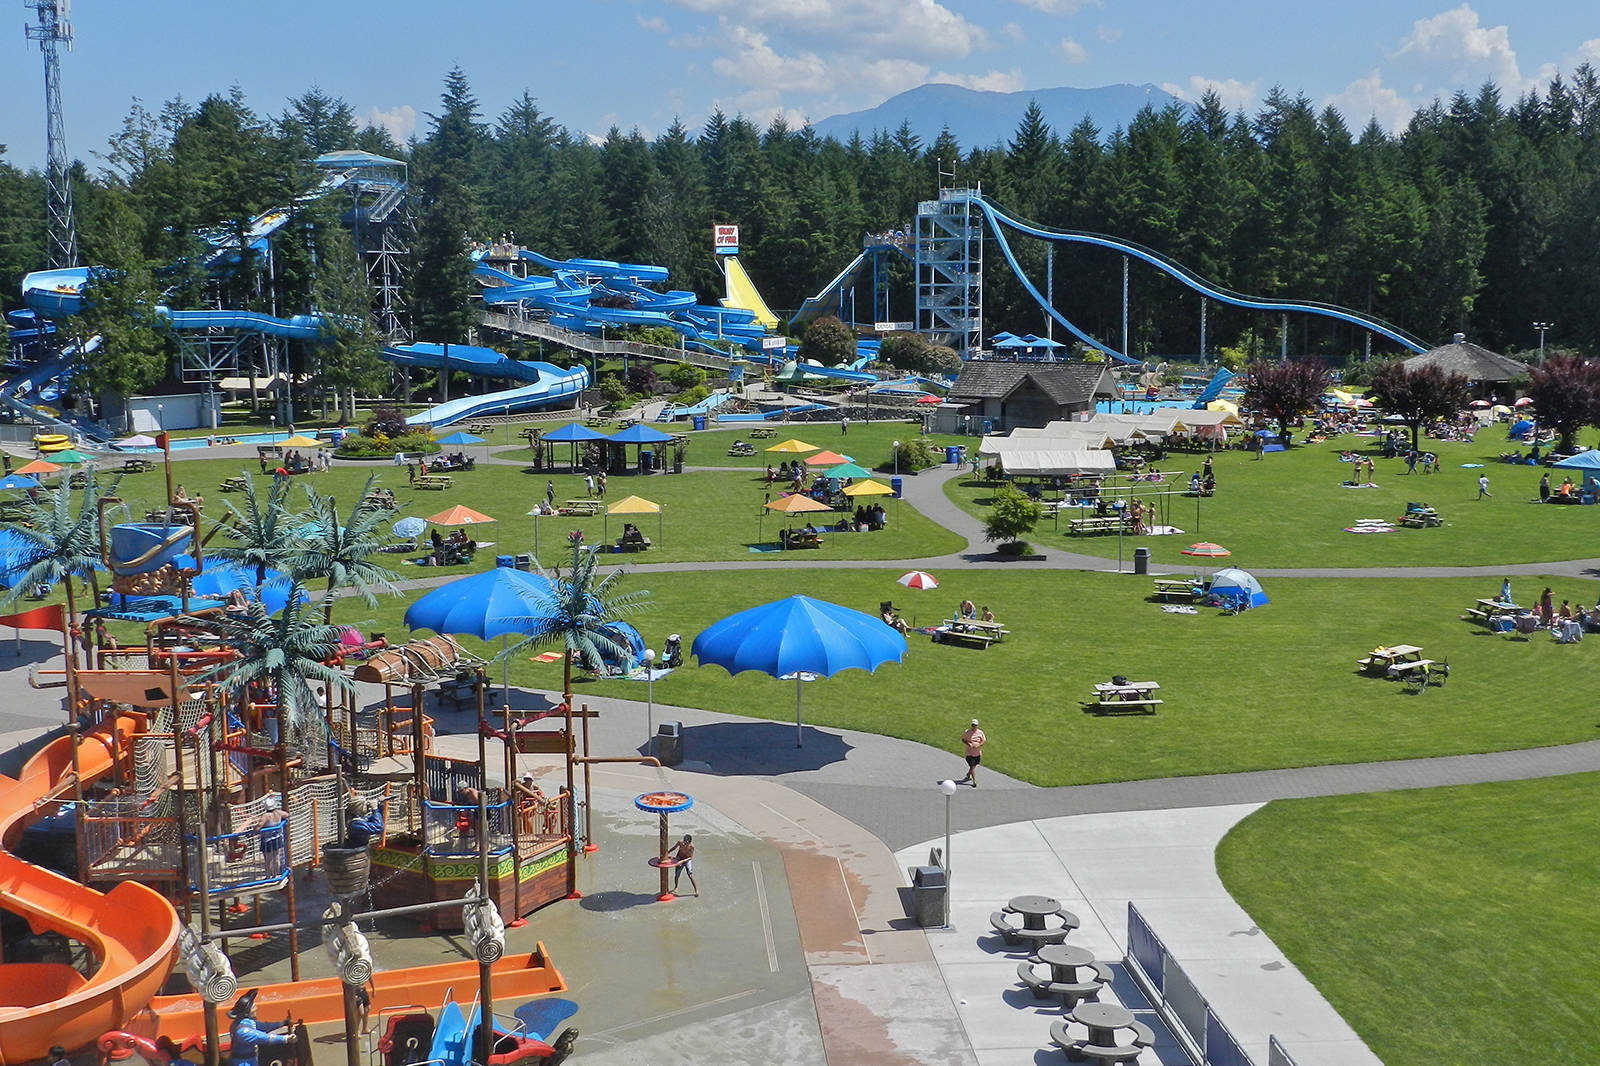 Cultus Lake Waterpark and adjacent Adventure Park have reopened on a limited basis, while some tourism businesses are more dependent on out-of-province visitors. (Cultus Lake Waterpark)